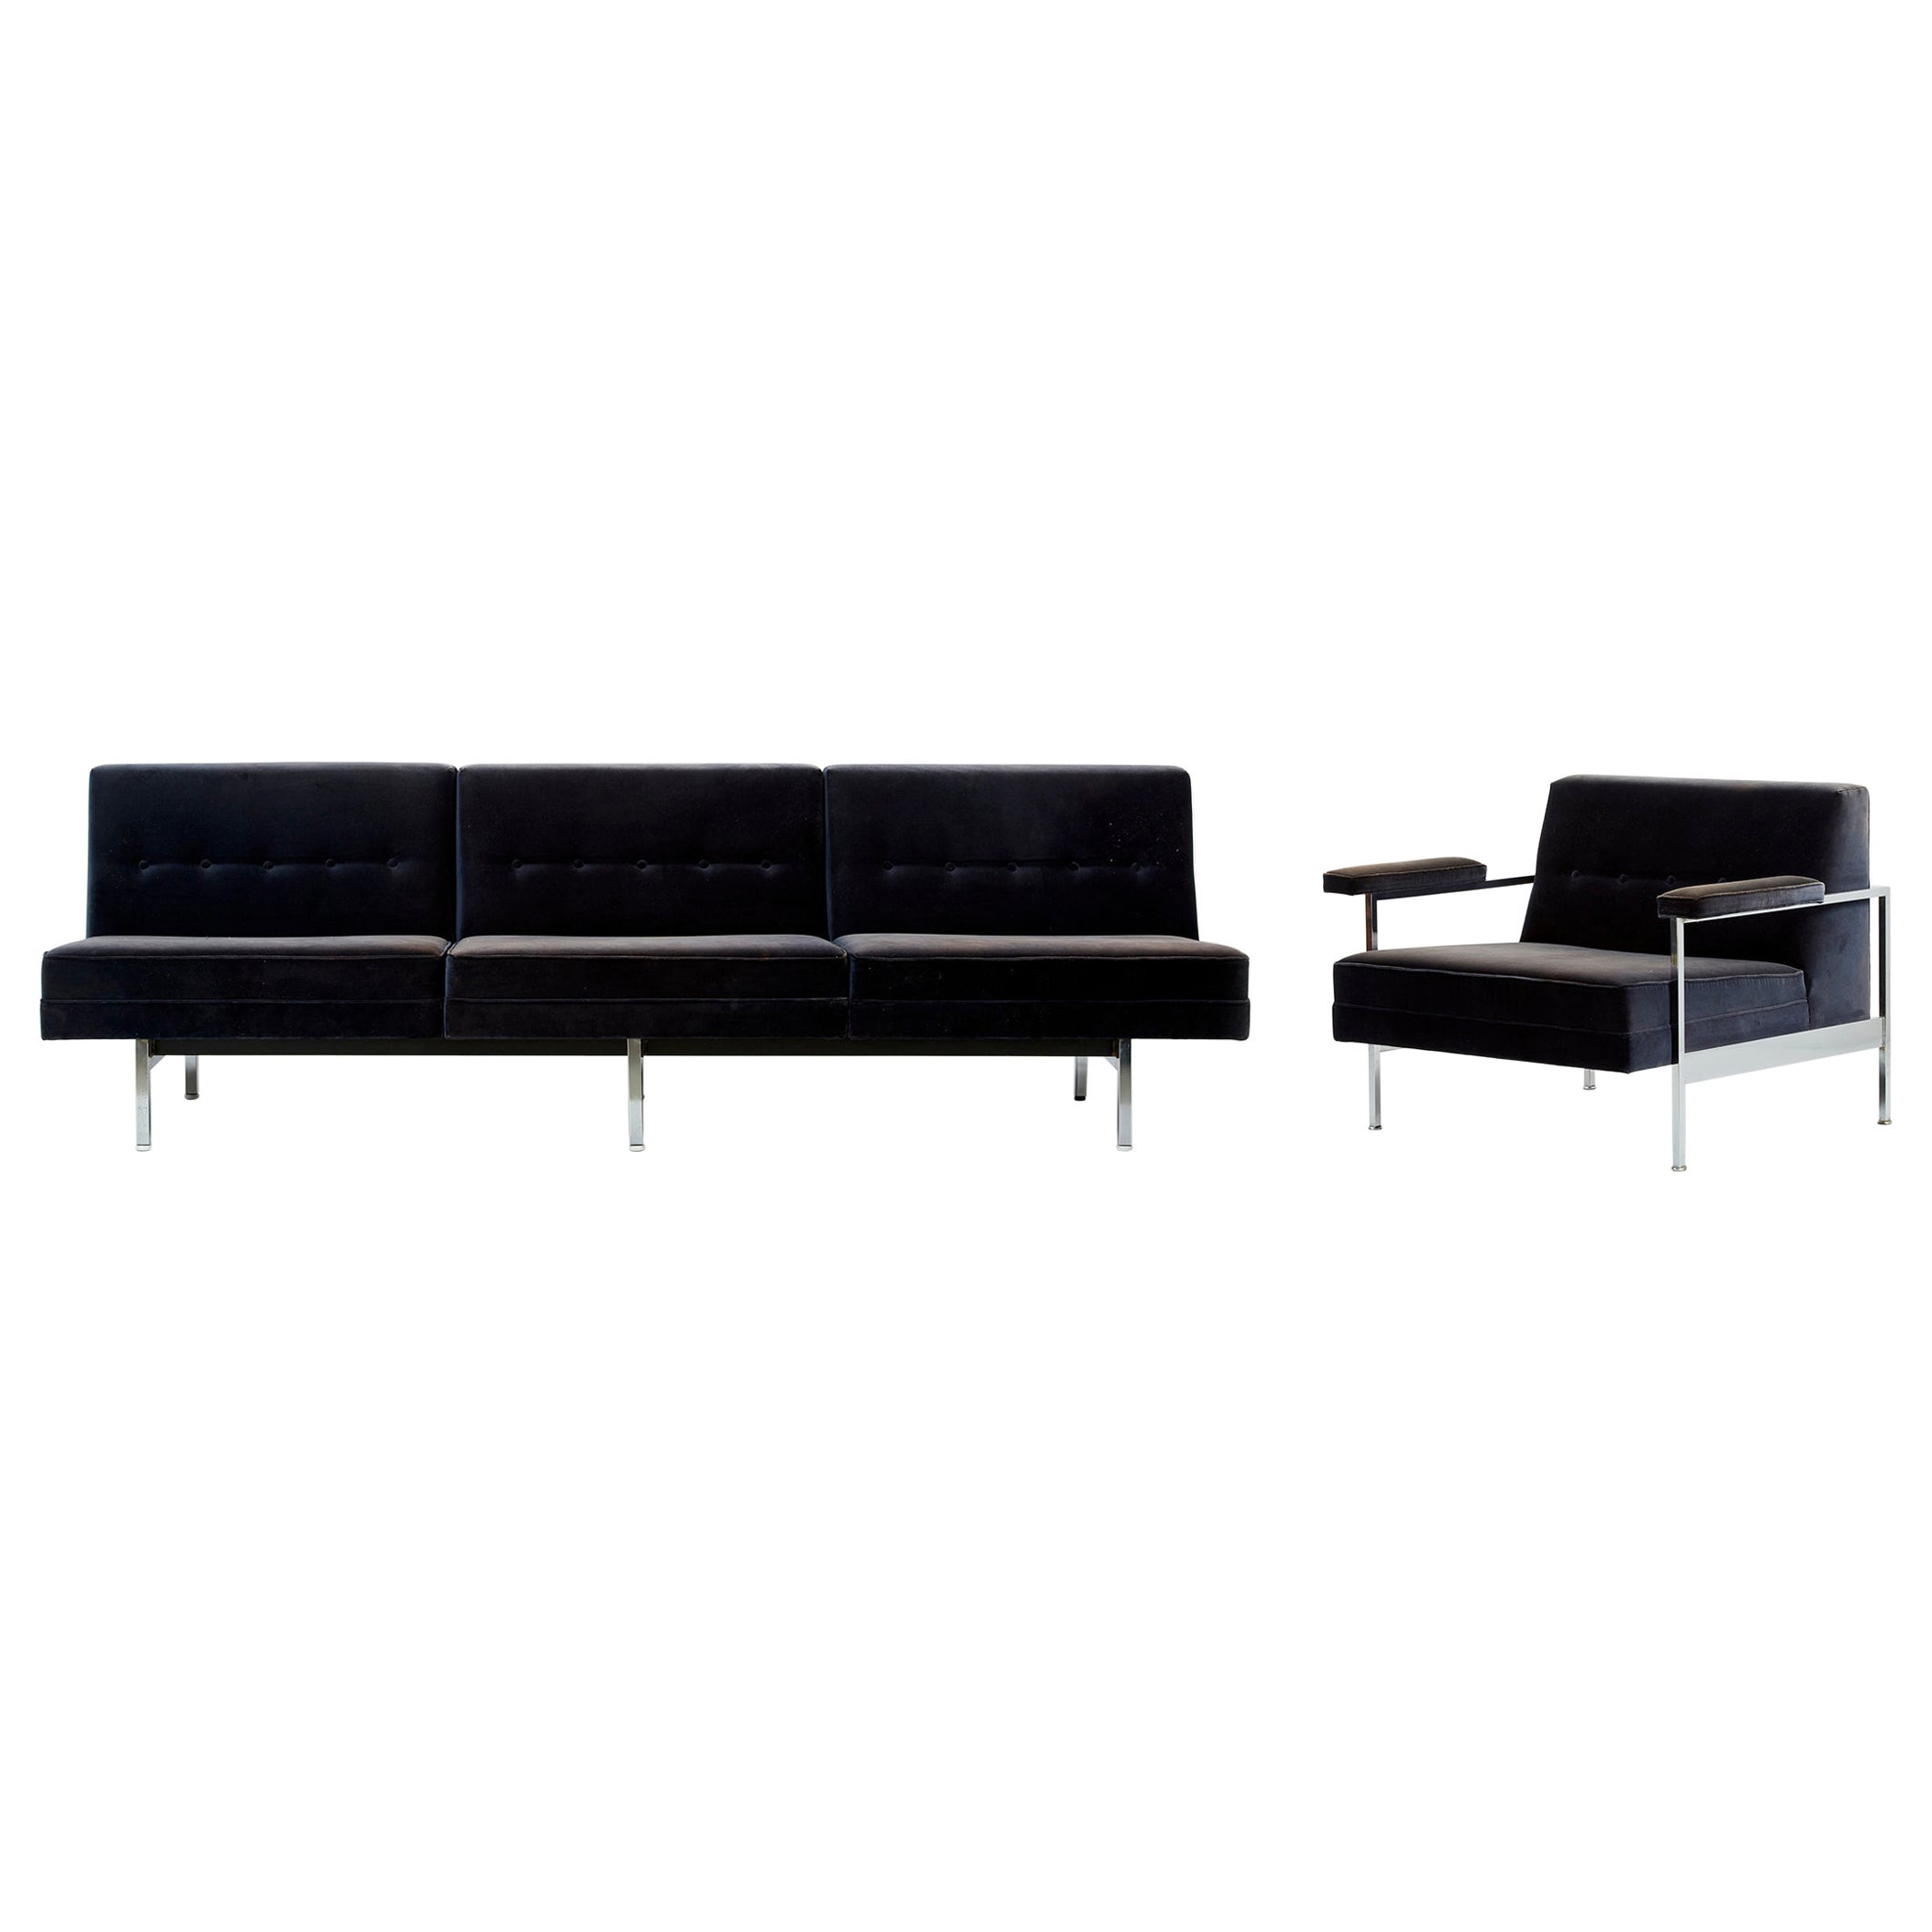 George Nelson Modular Sectional Sofa and Chair by Herman Miller, USA, 1960s